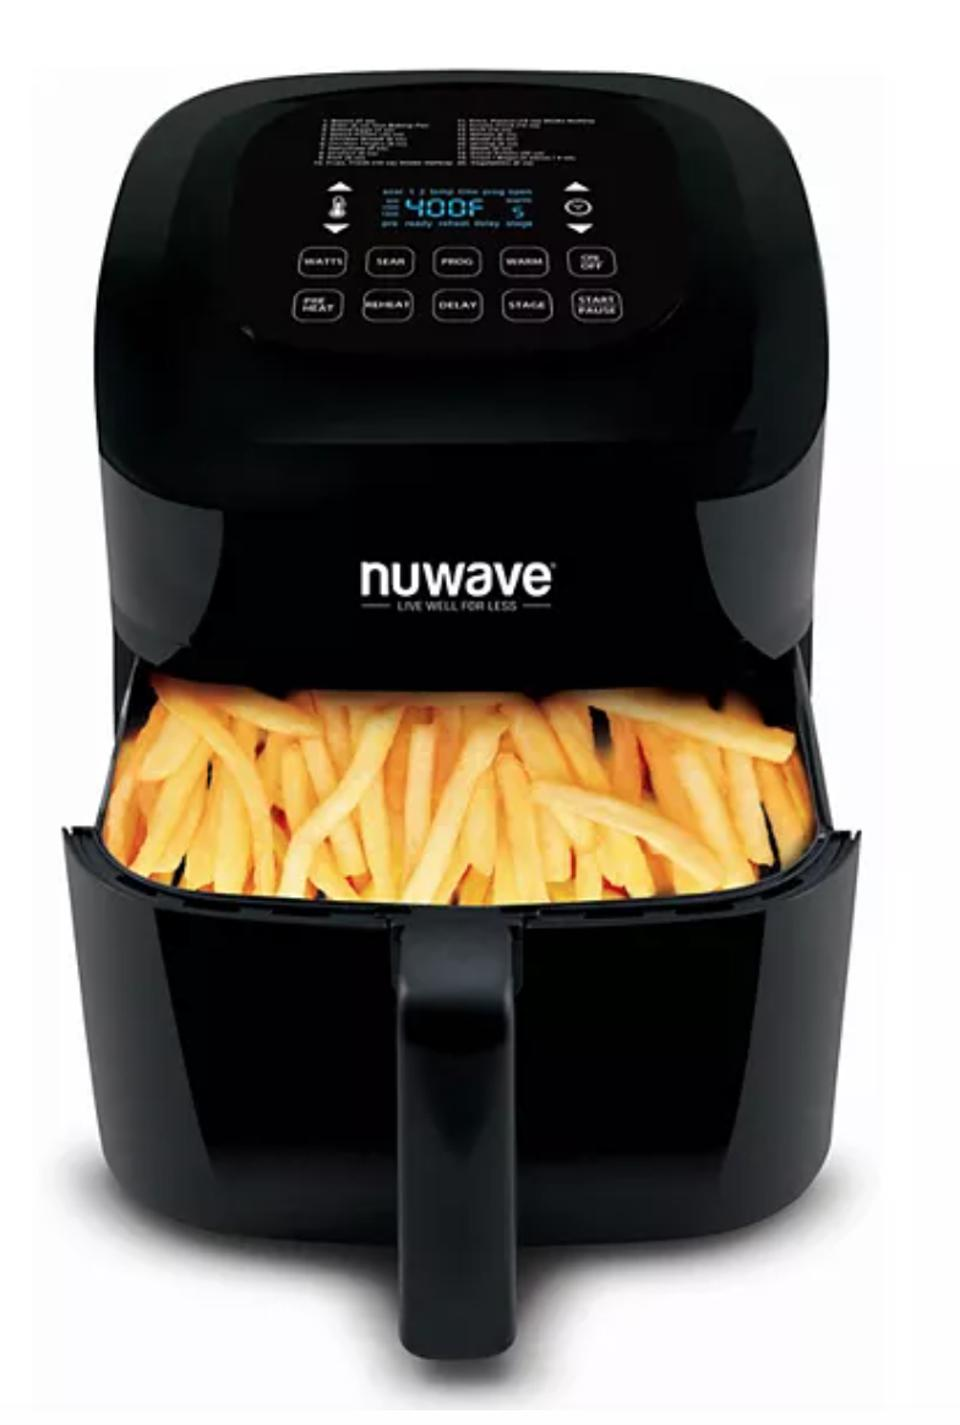 NuWave Brio 7.25-qt. Air Fryer